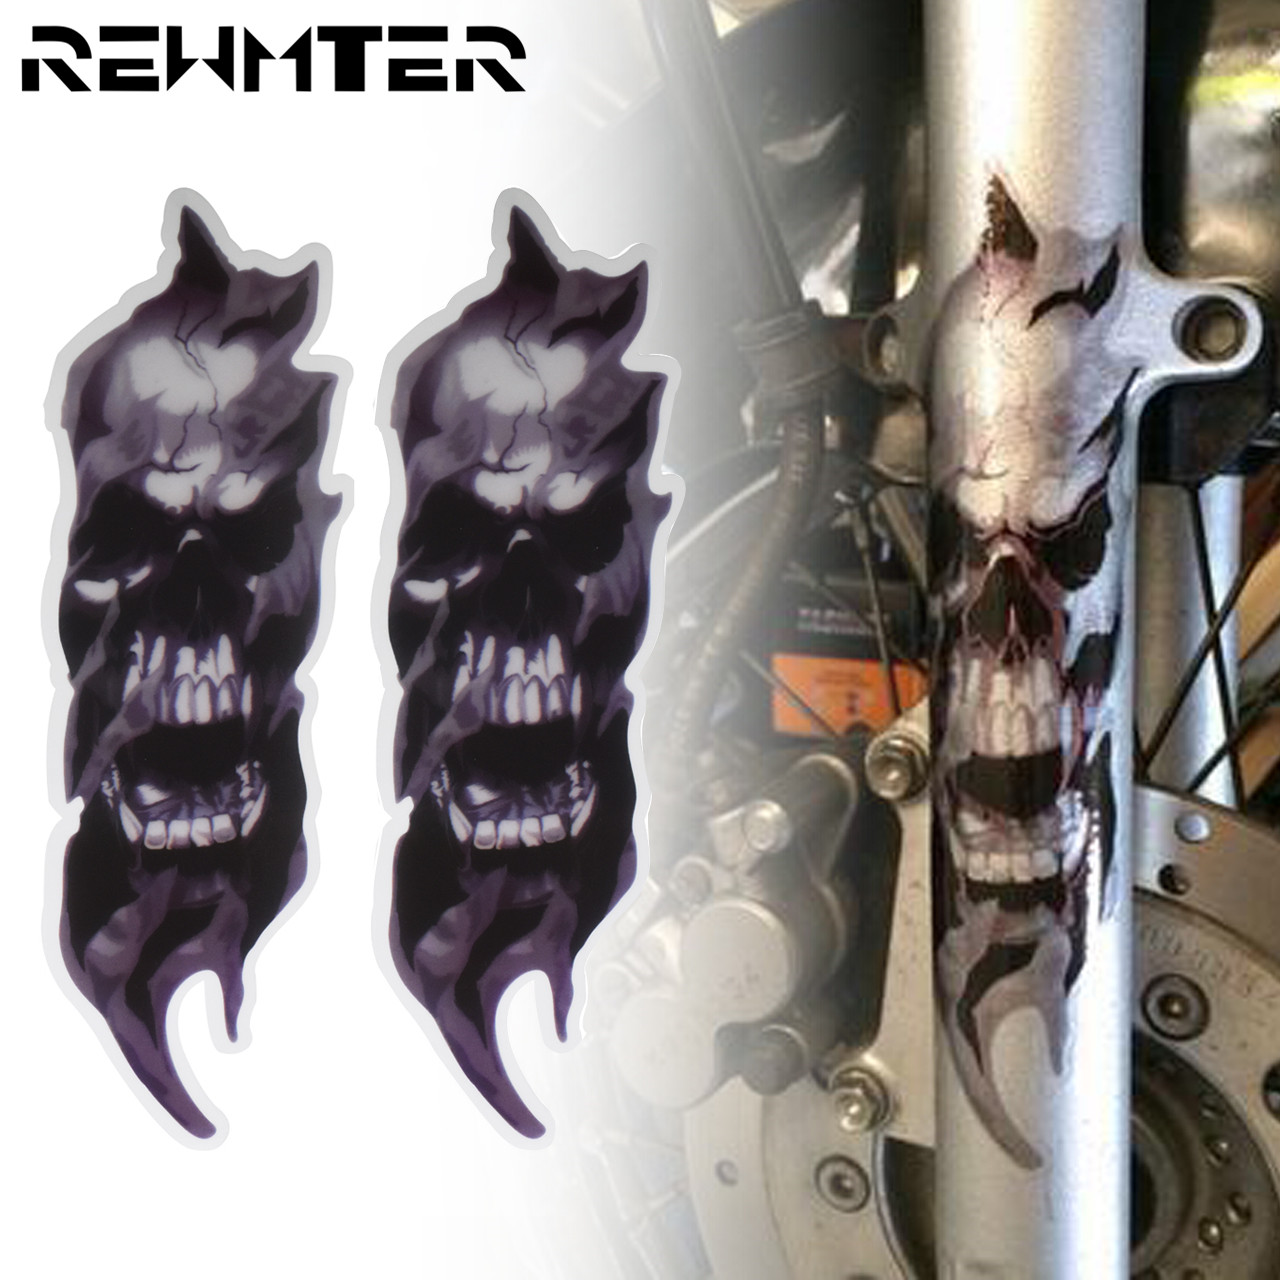 2PCS Motorcycle Front Fork Skull Zombie Decals Graphic Stickers For Harley For Honda For Yamaha For Kawasaki For Suzuki